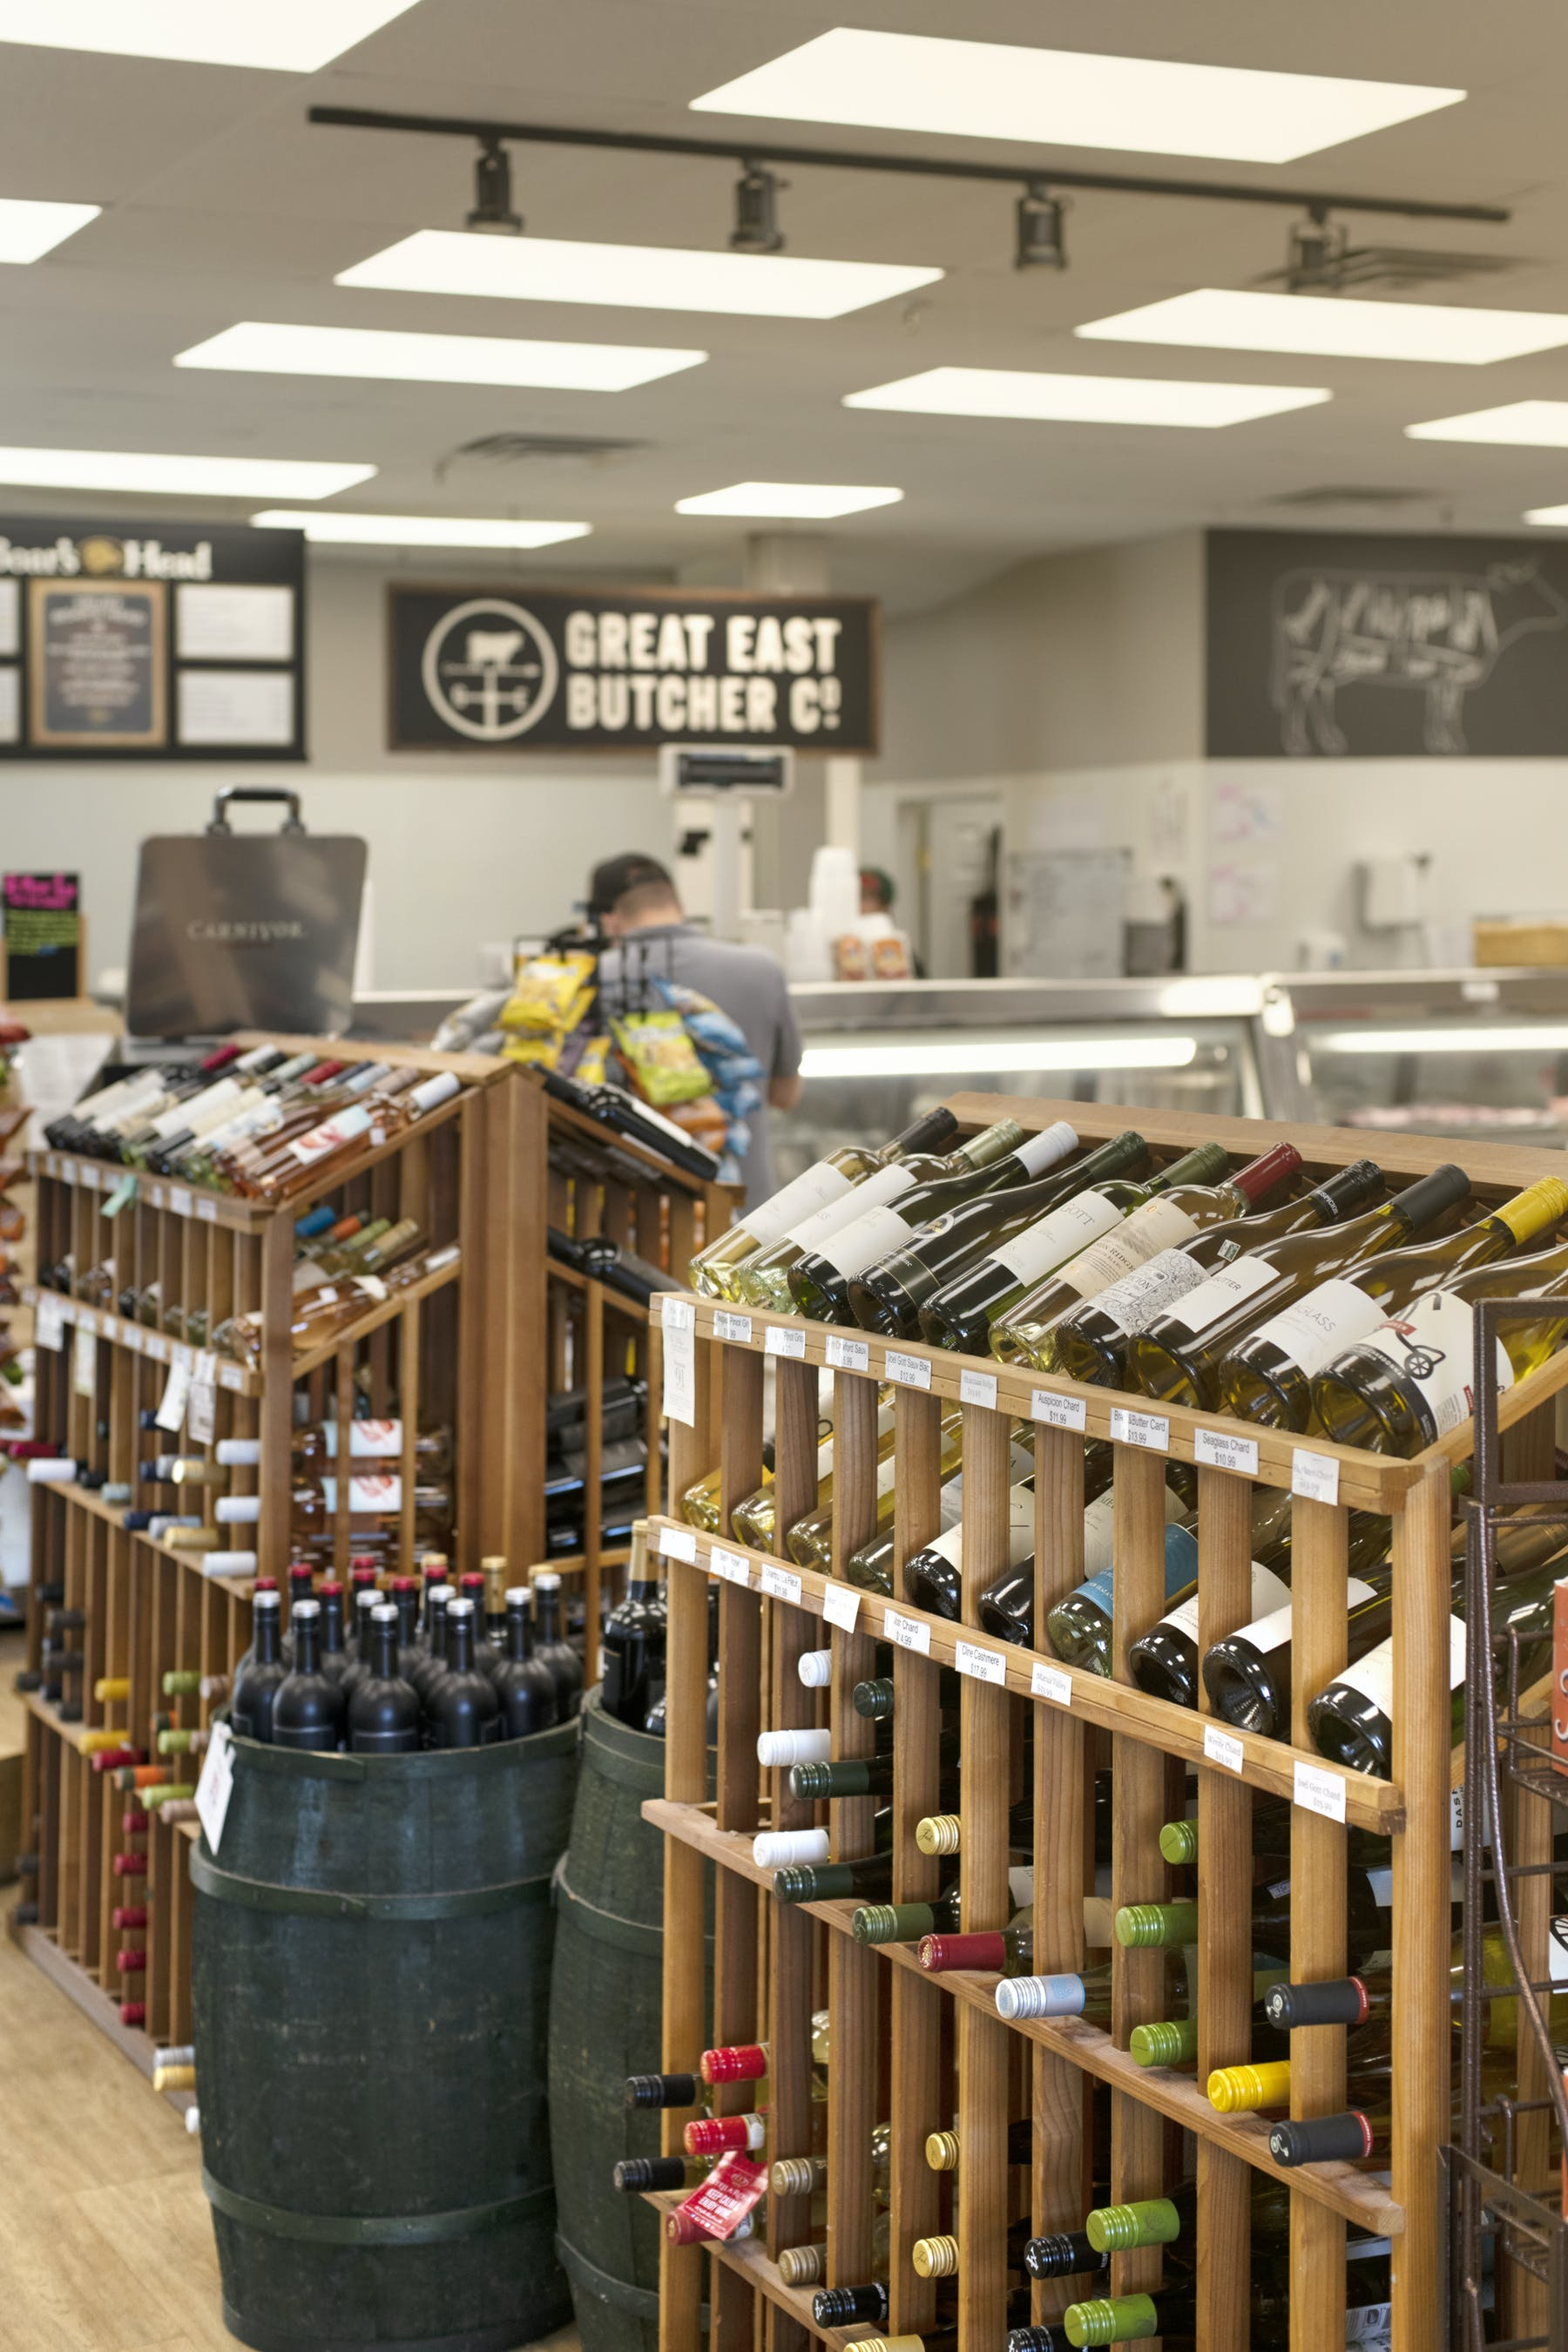 The wine section of burger provider The Great East Butcher in Portland, ME